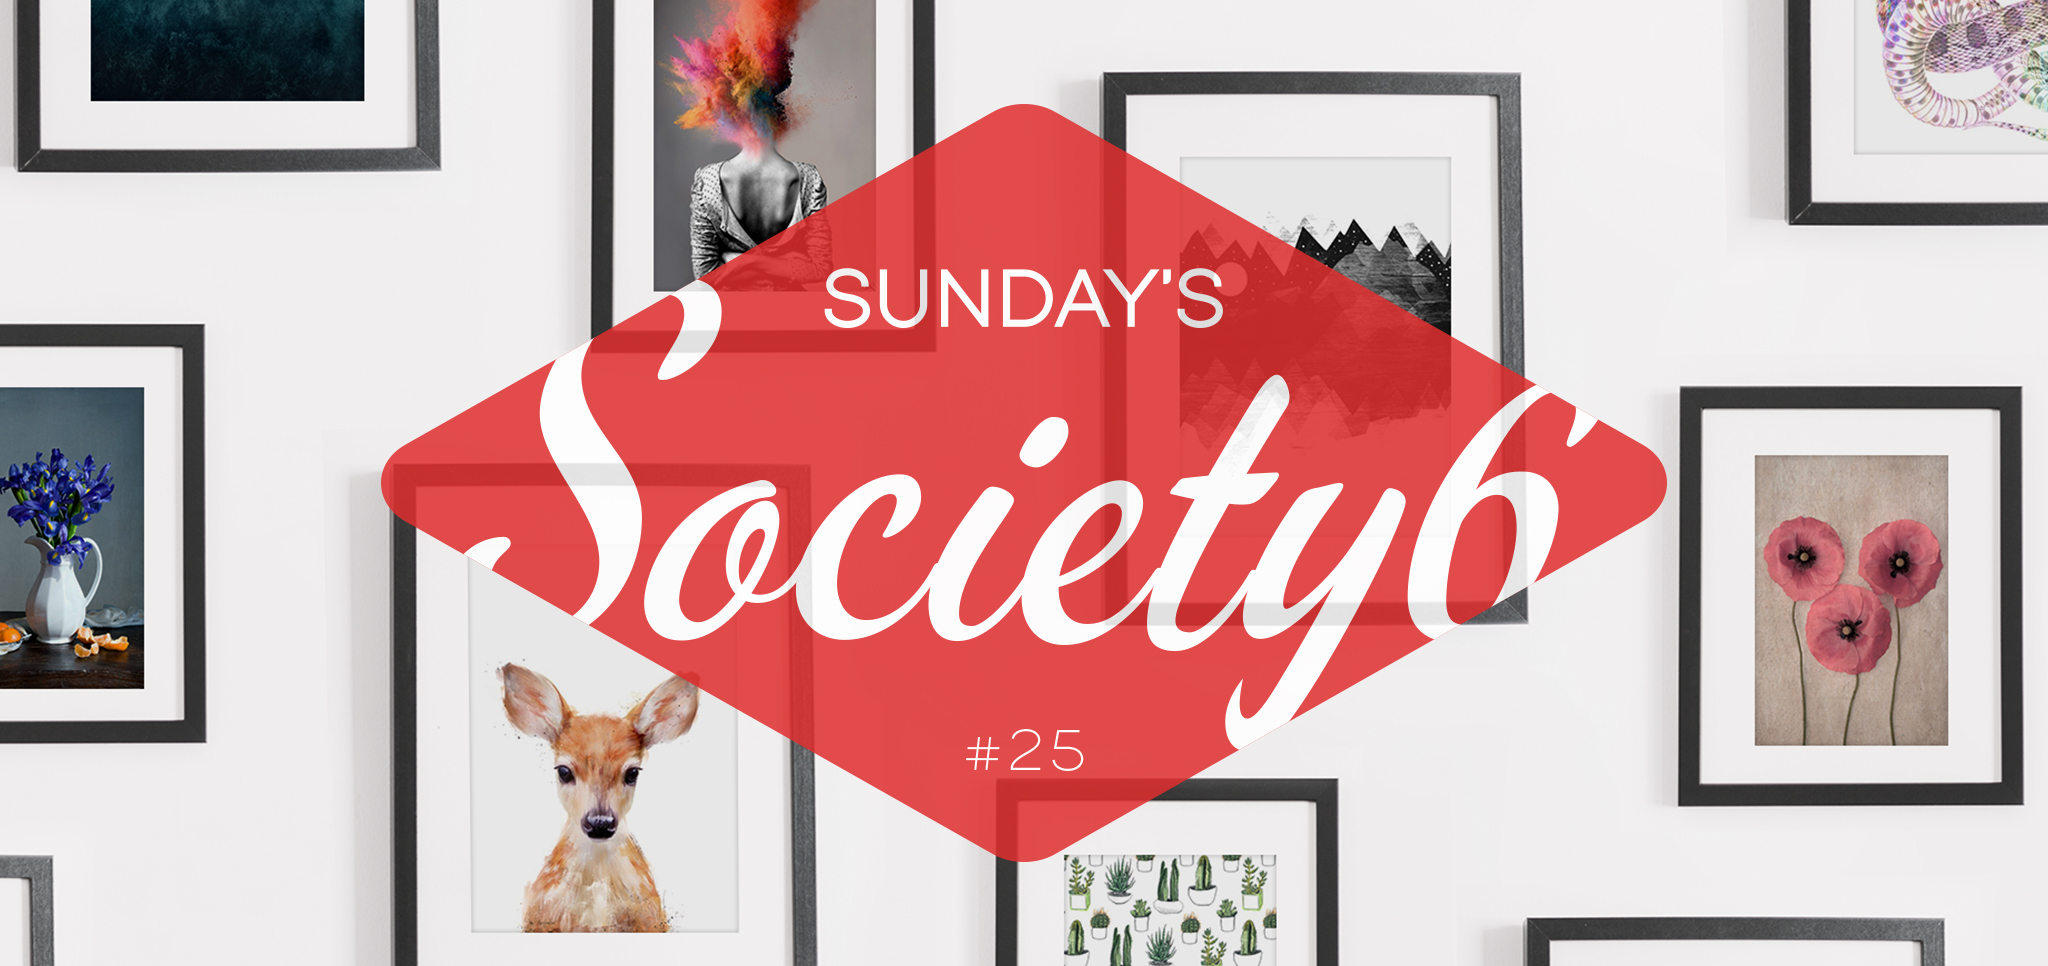 Sunday's Society6 #25